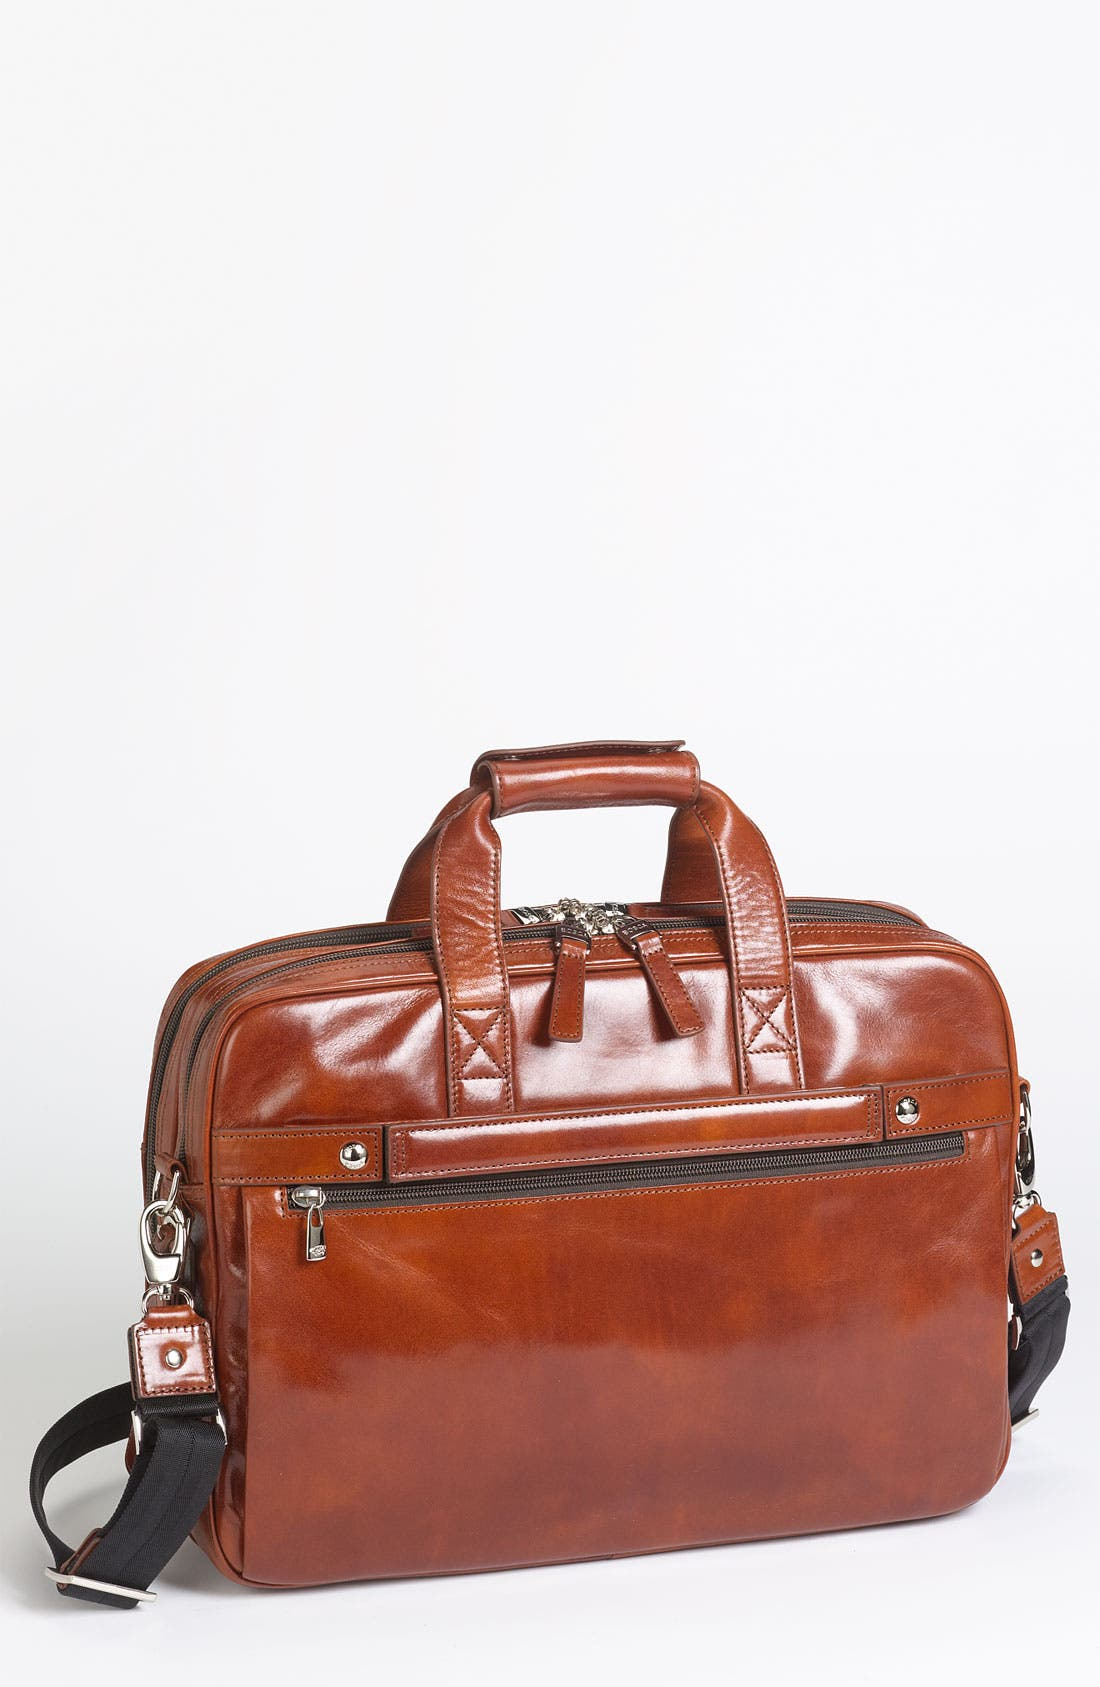 Double Compartment Leather Briefcase,                             Main thumbnail 1, color,                             233